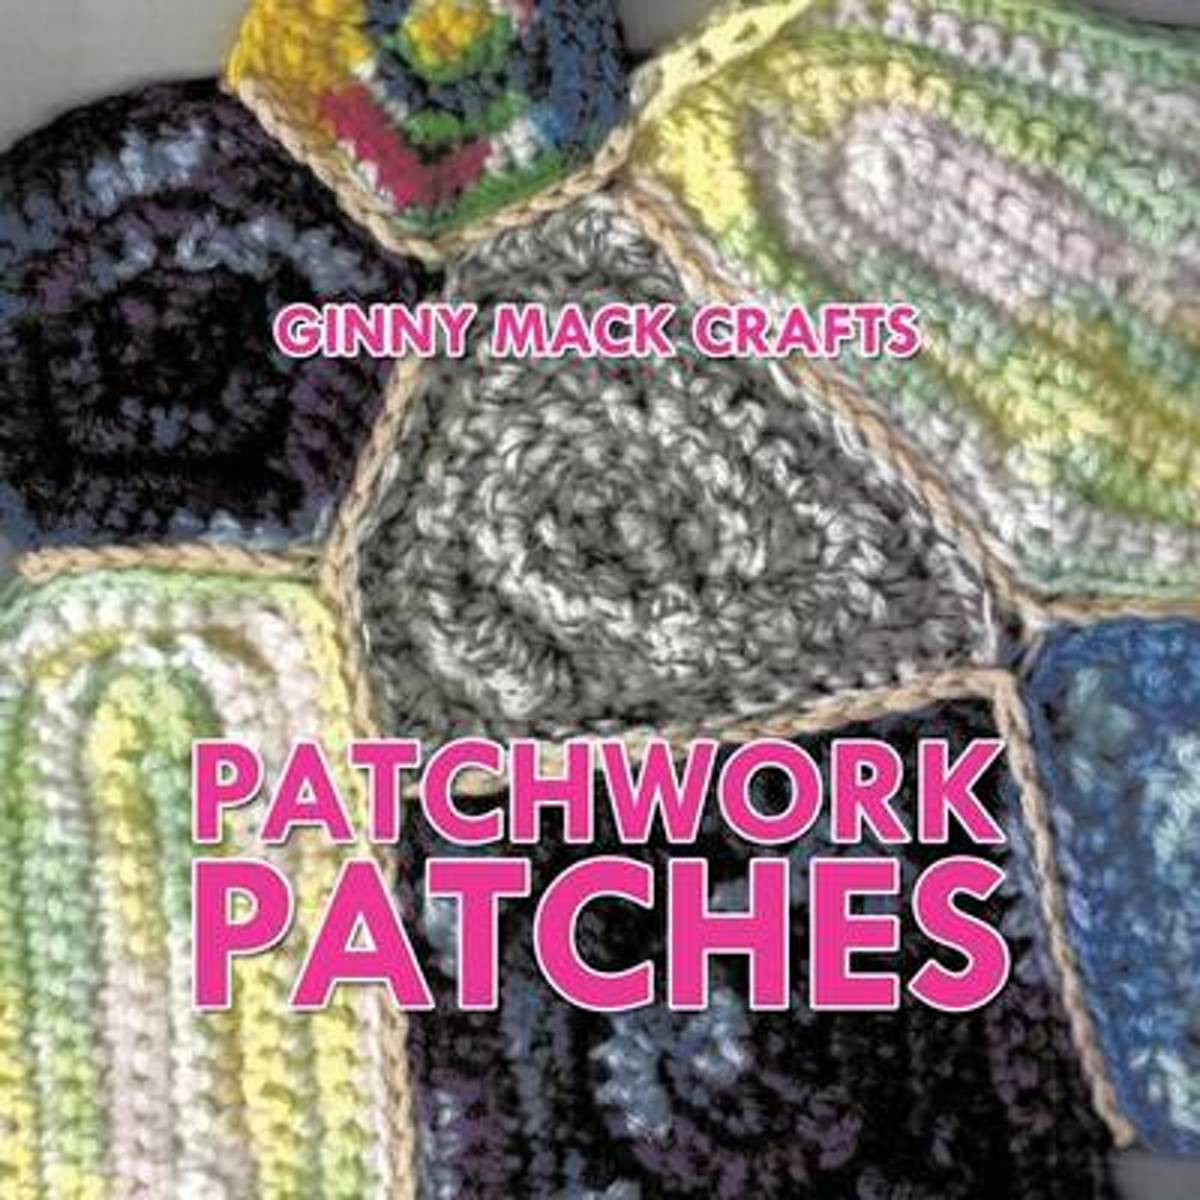 Patchwork Patches